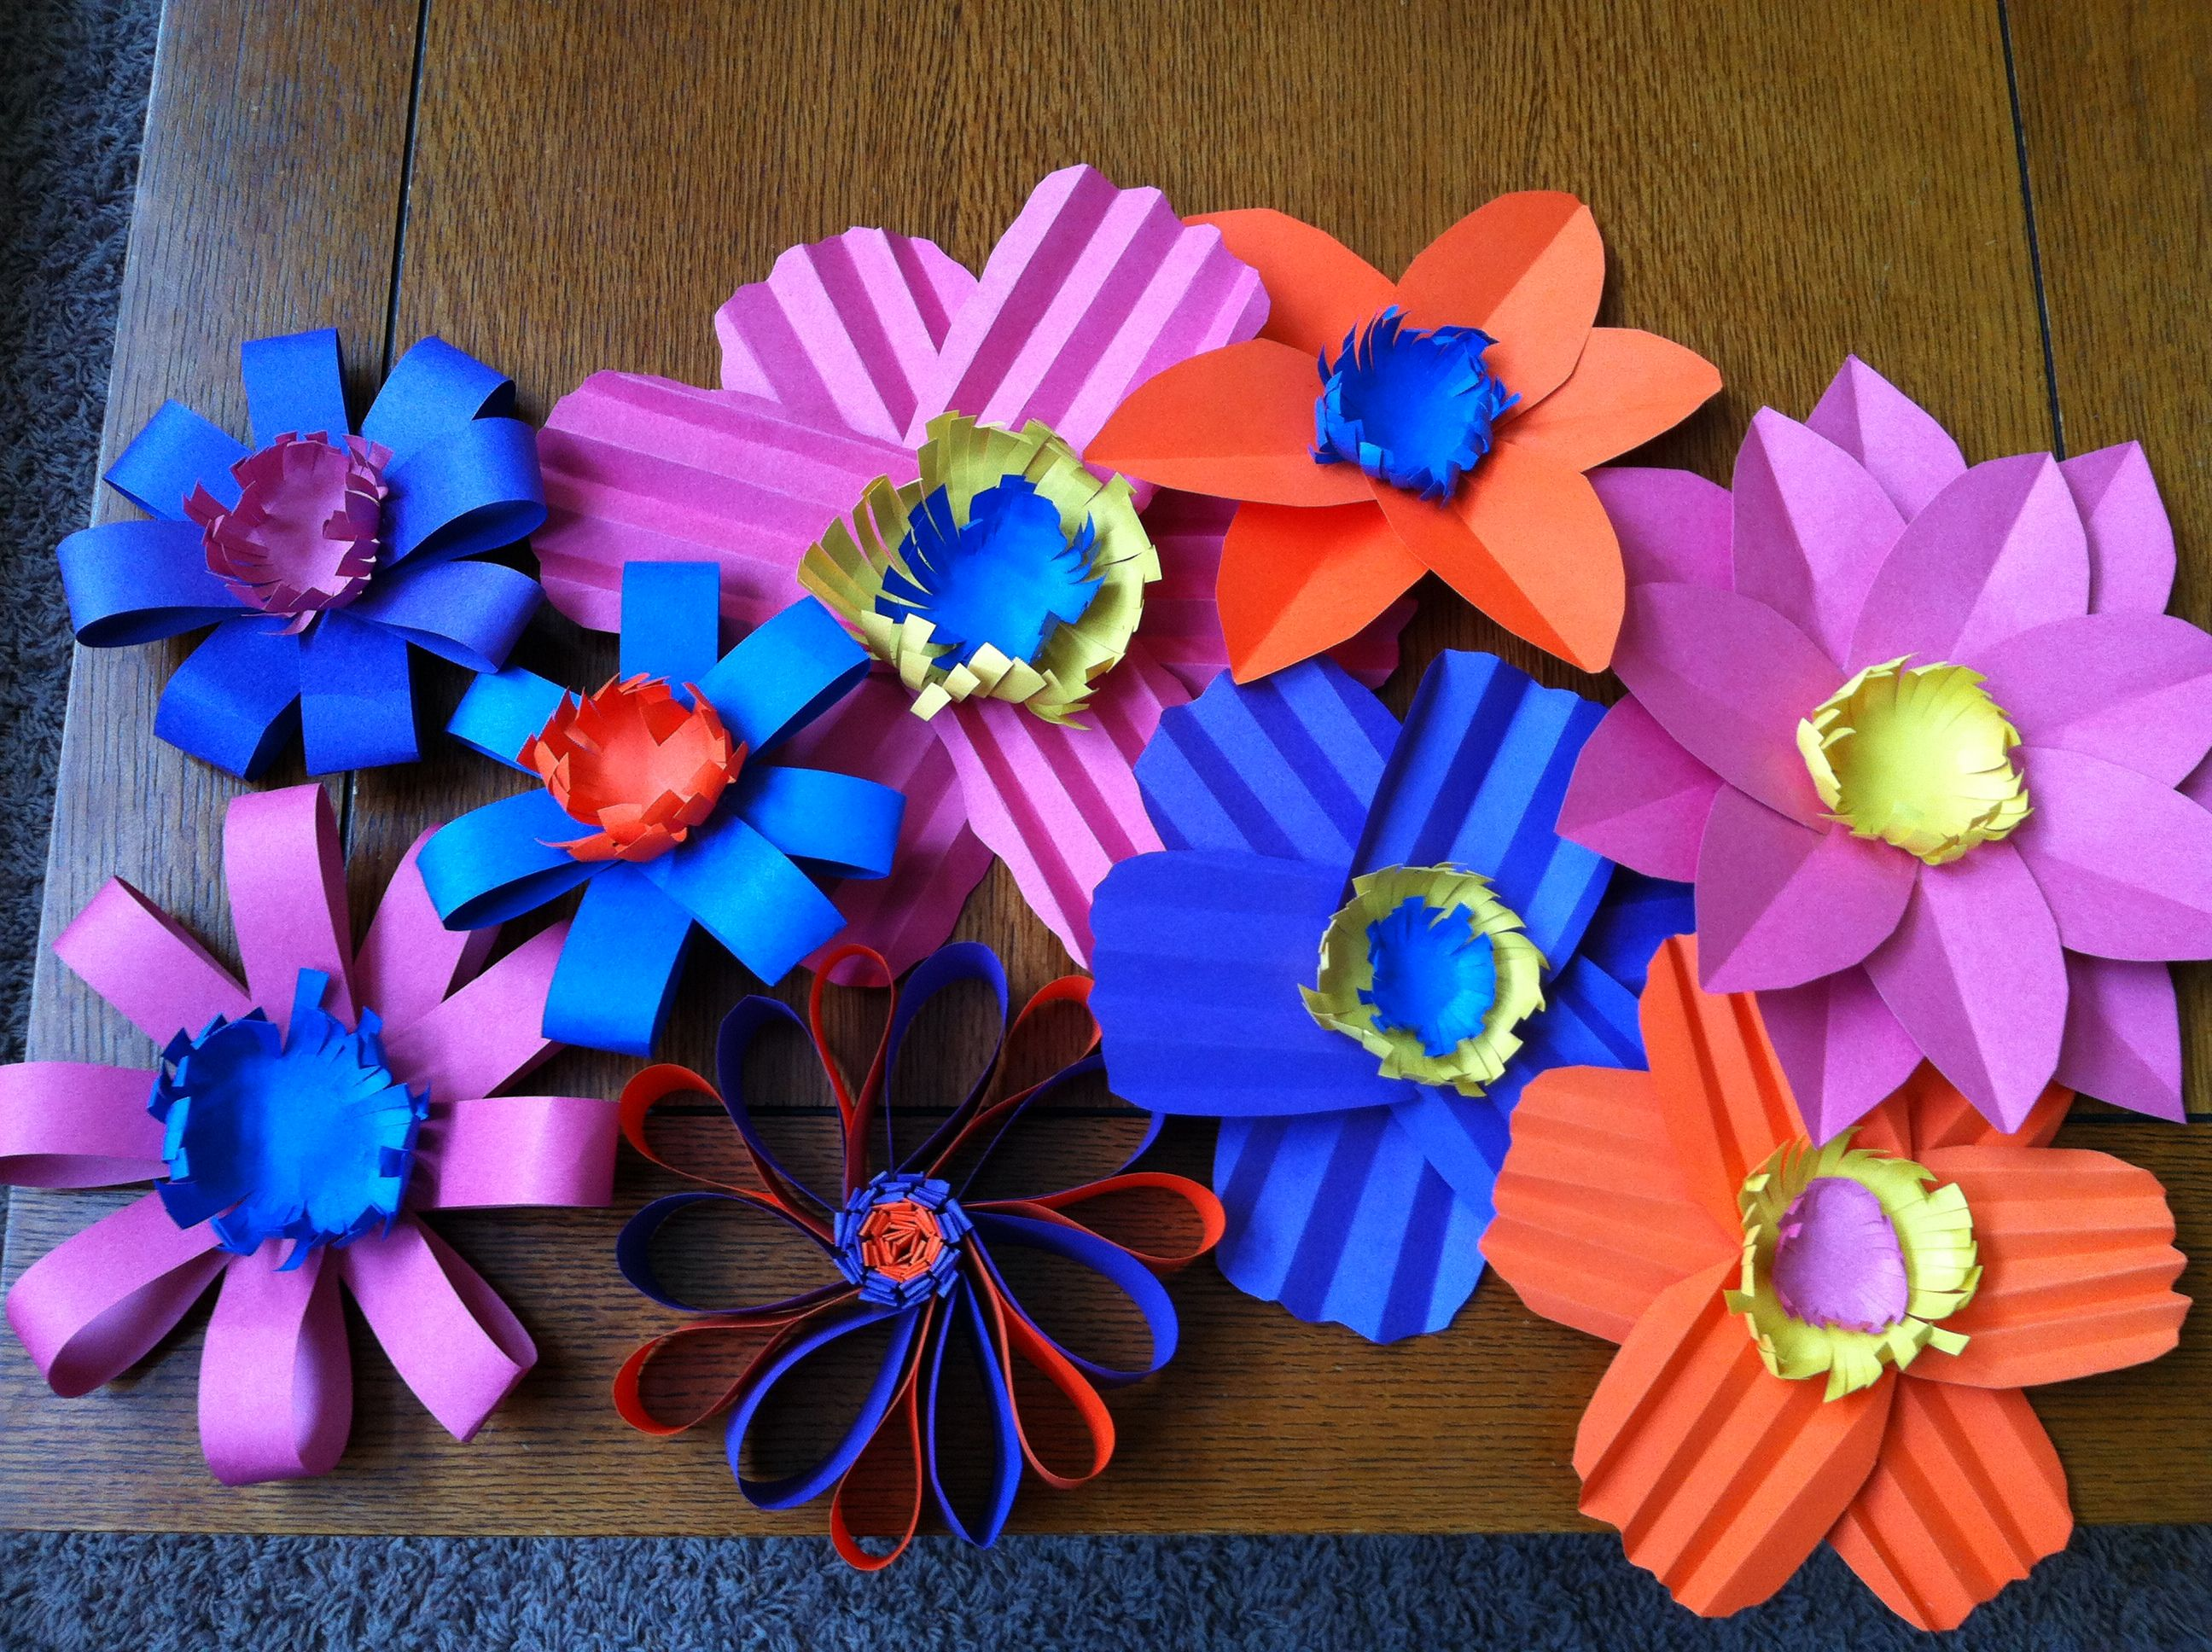 Construction Paper Flowers Made For The Spring Library Bulletin